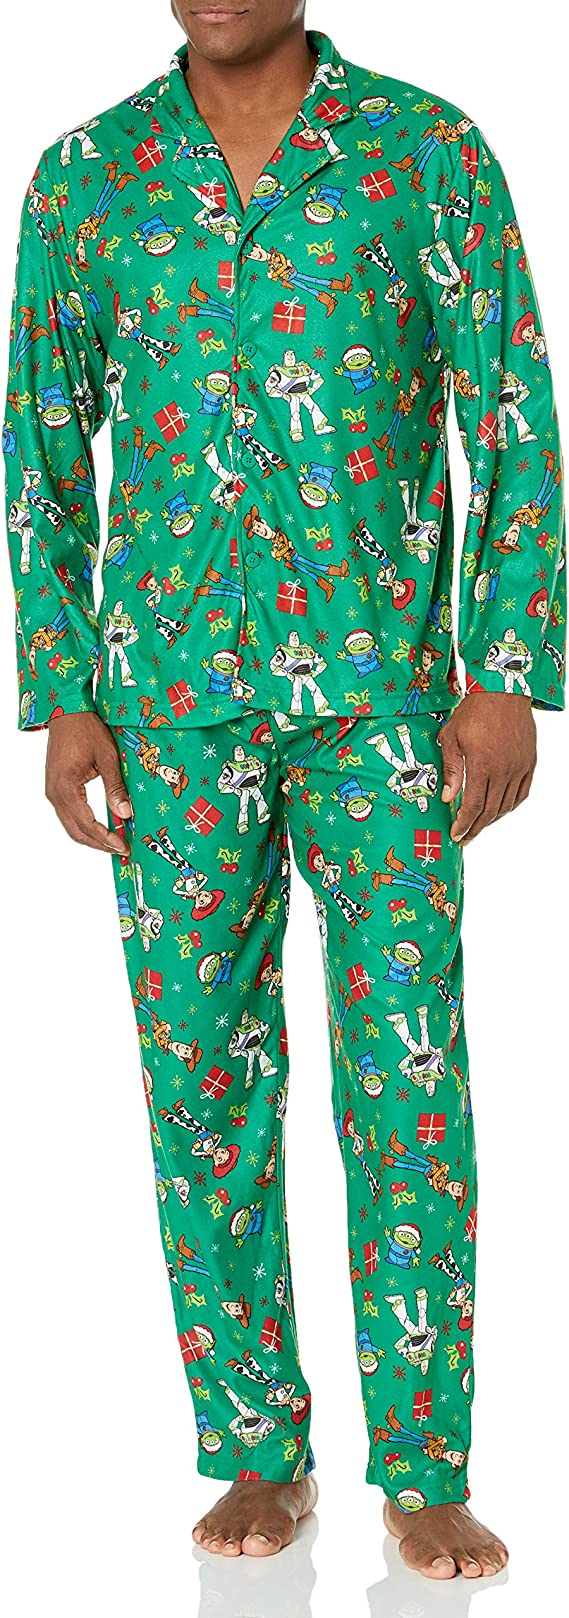 Disney Mens Toy Story Holiday Family Sleepwear Collection ...